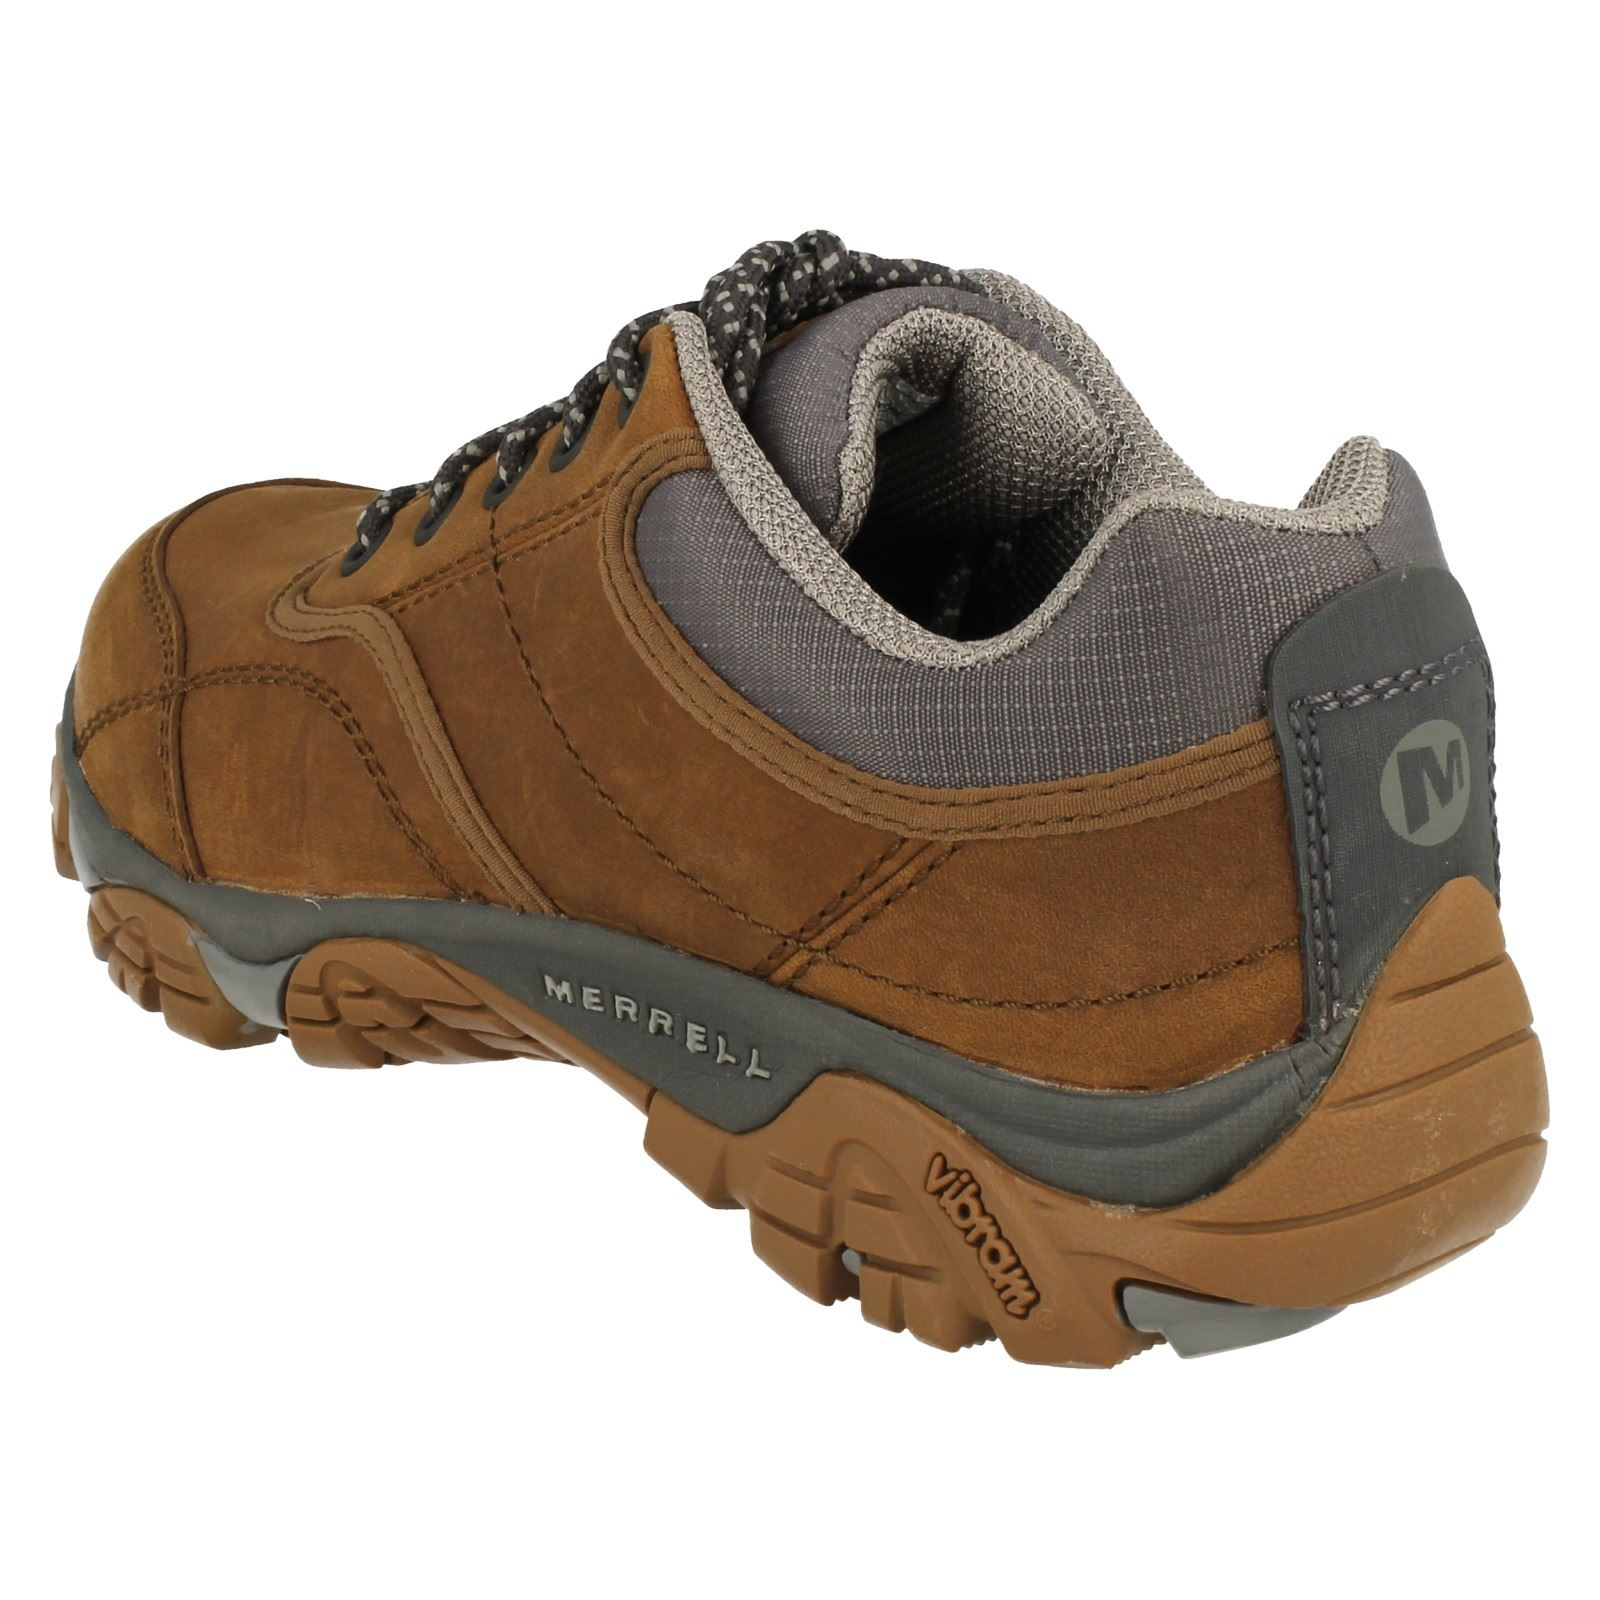 mens merrell casual shoes moab rover ebay